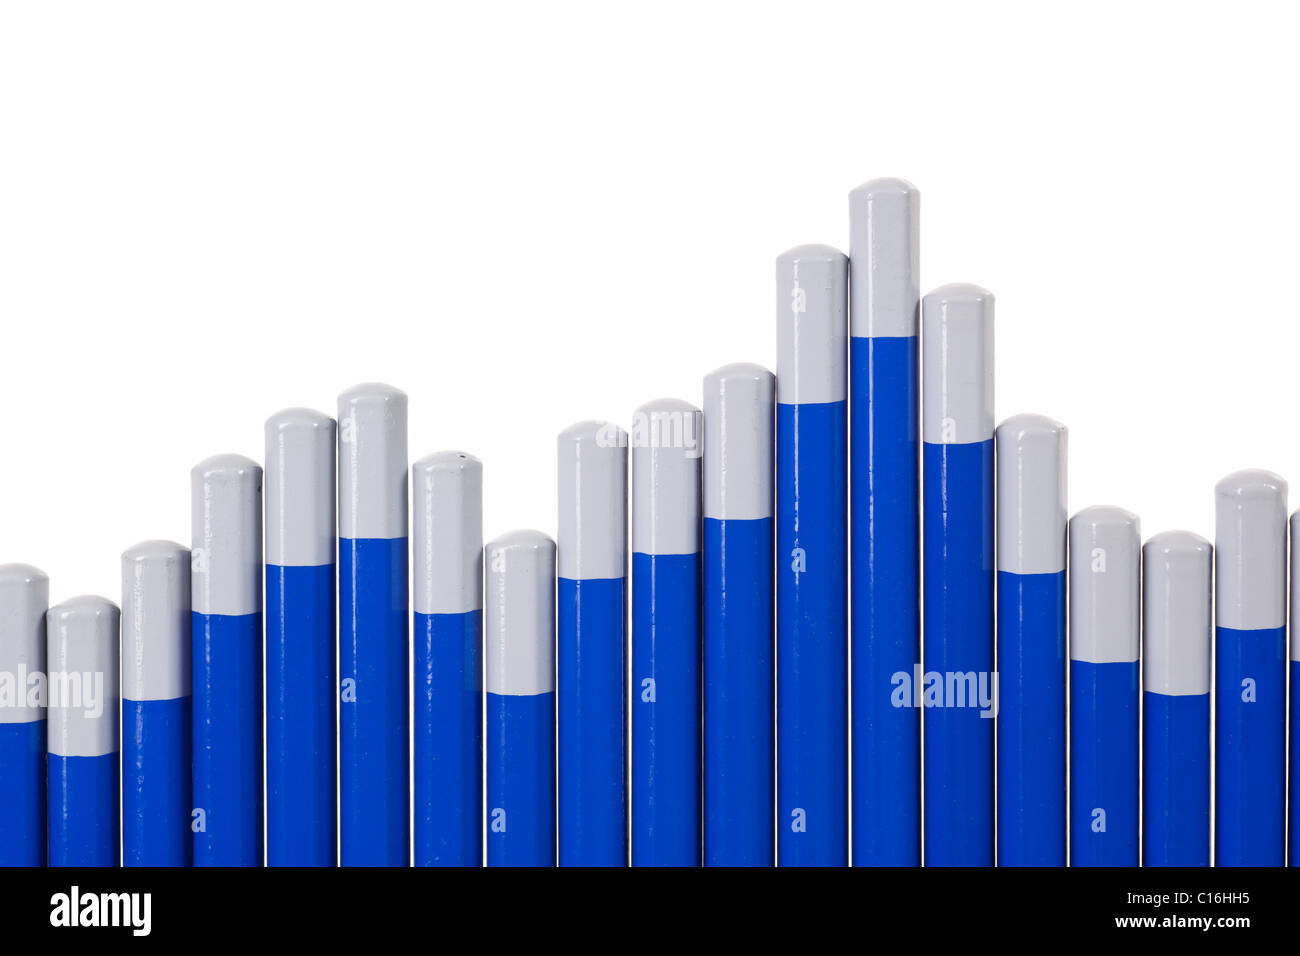 Pencils forming a chart isolated on white background - Stock Image